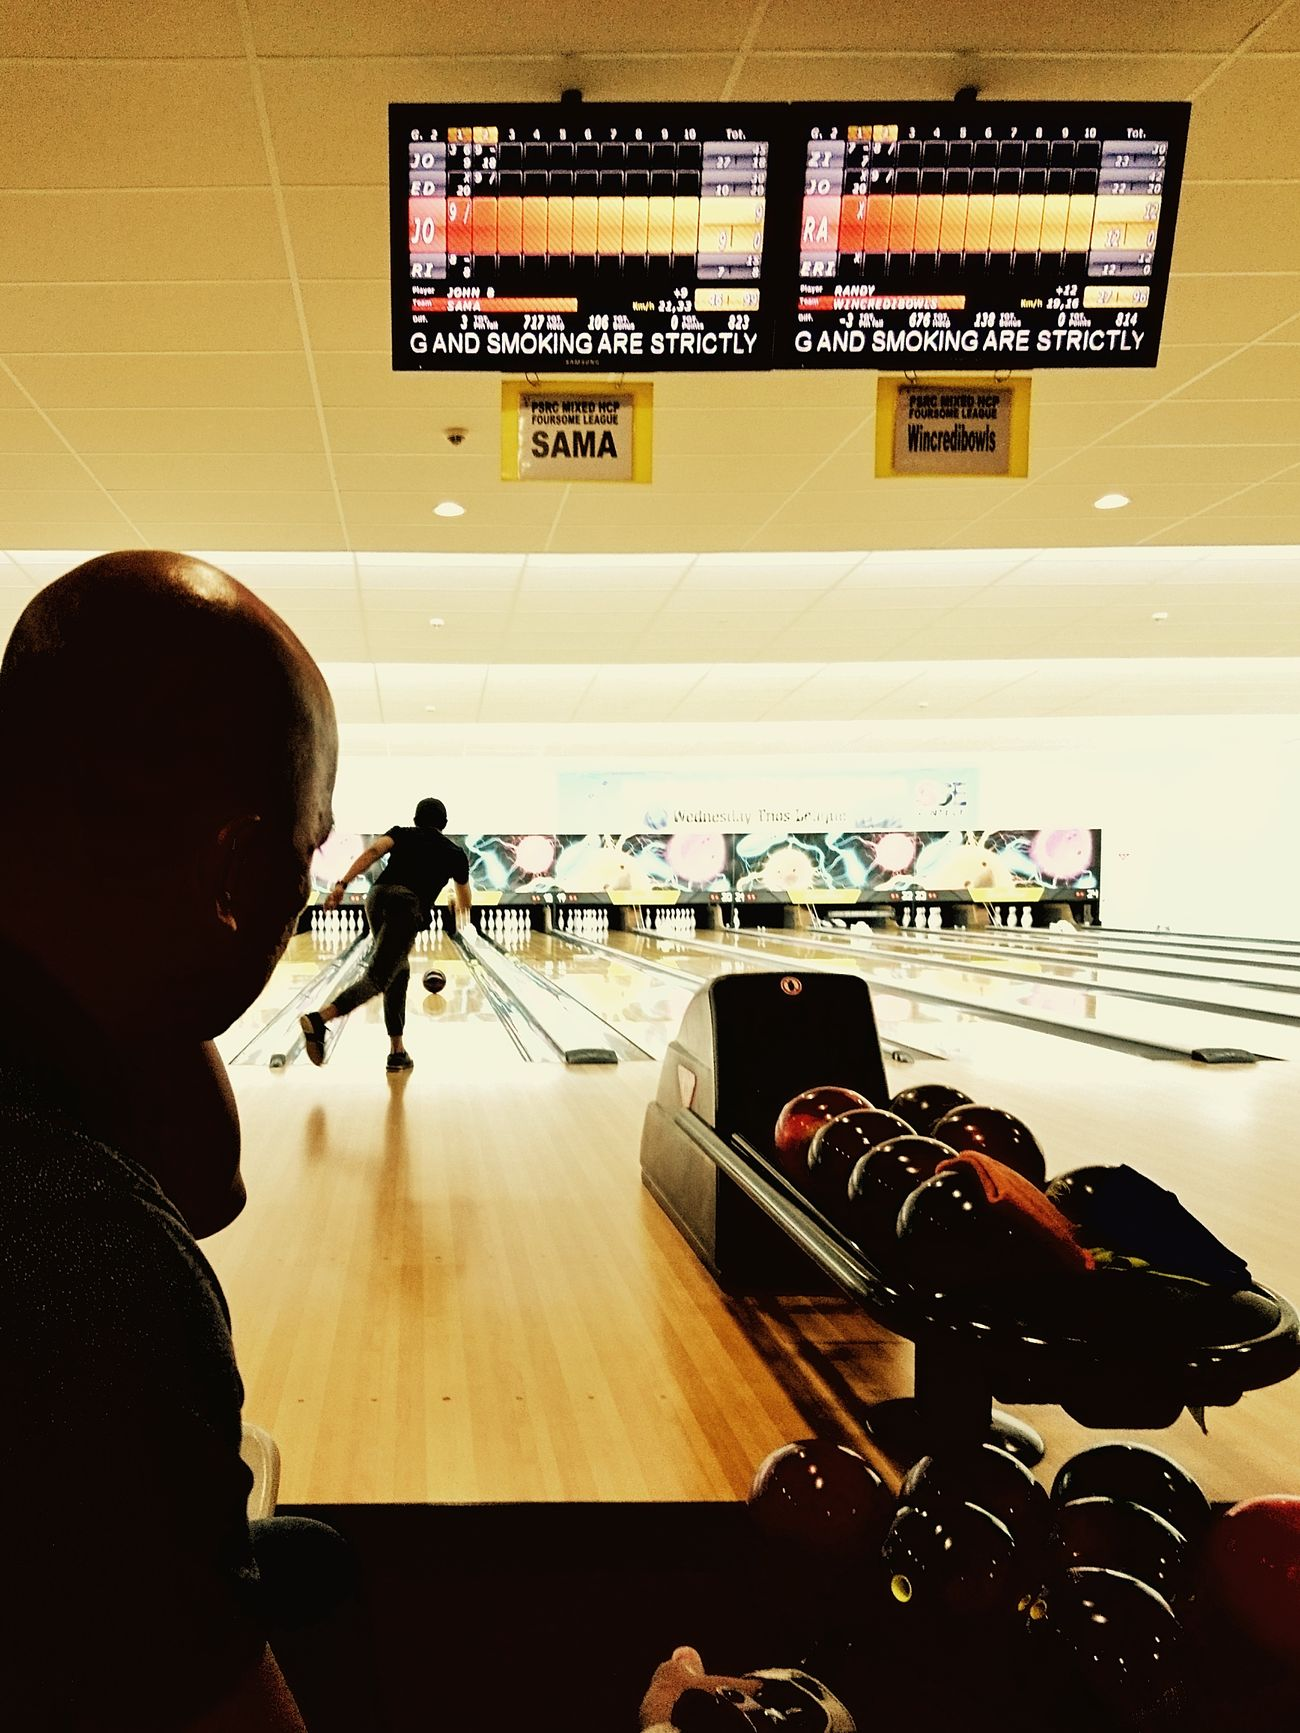 Bowling night Bowling Bowling Alley Bowling Balls Indoors  Drastic Light Lanes Brightly Lit Throwing